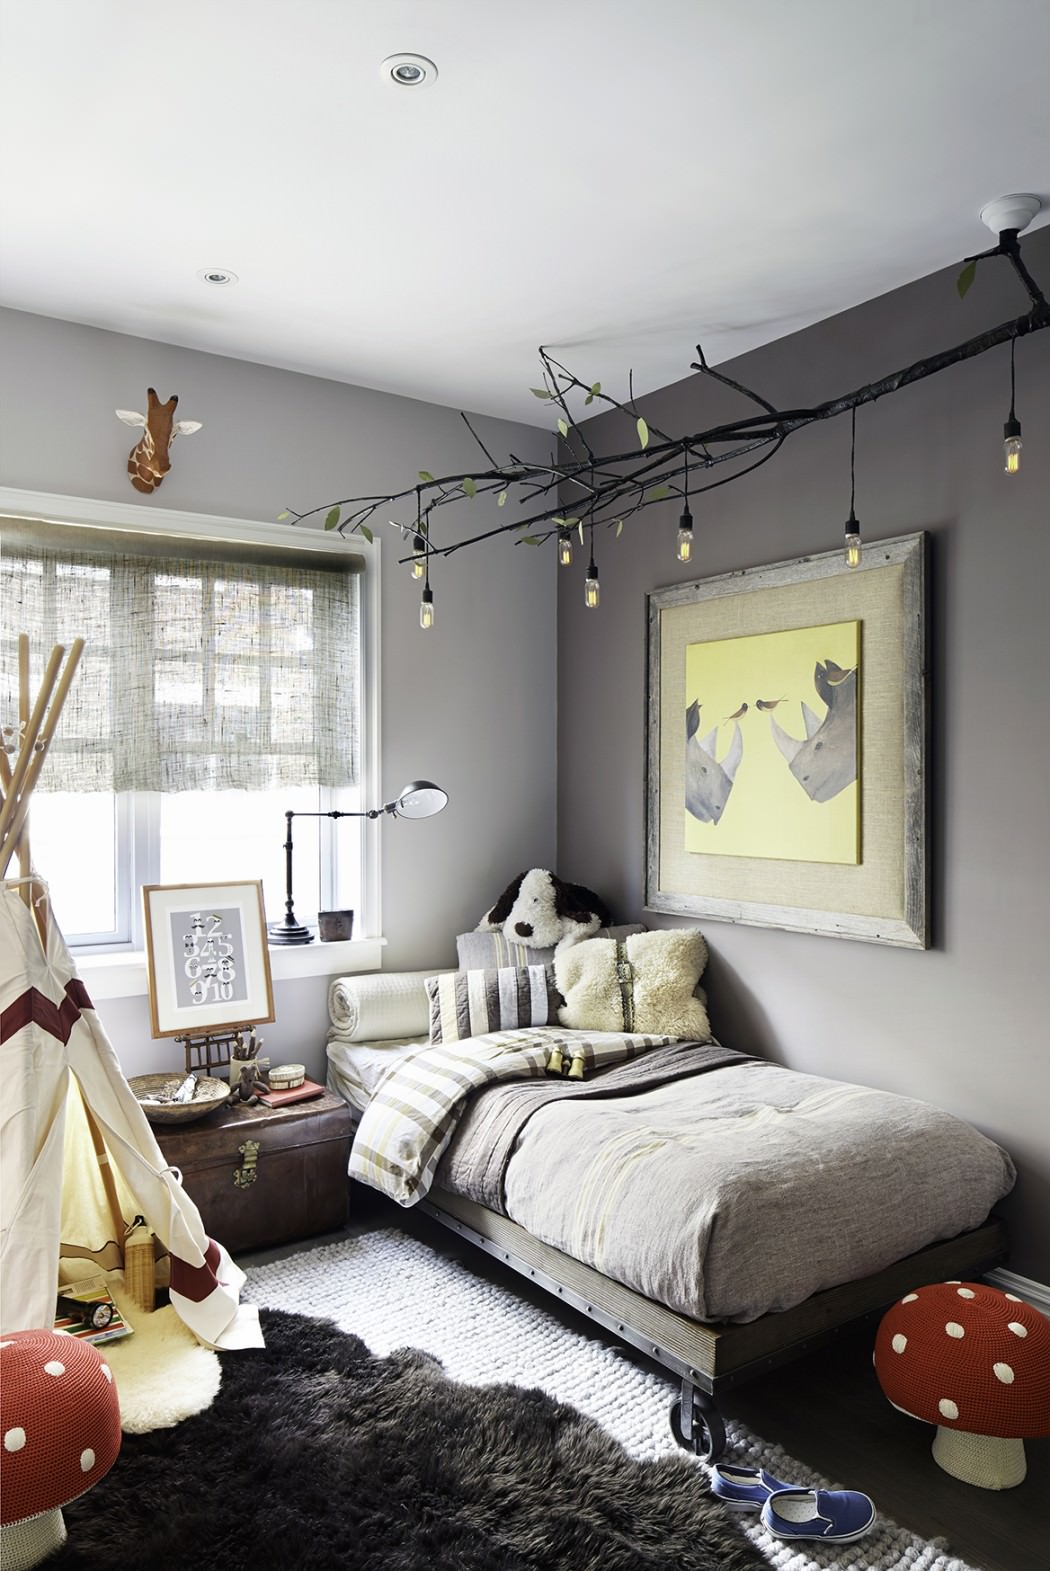 15 youthful bedroom color schemes what works and why for Room decor for 5 year old boy